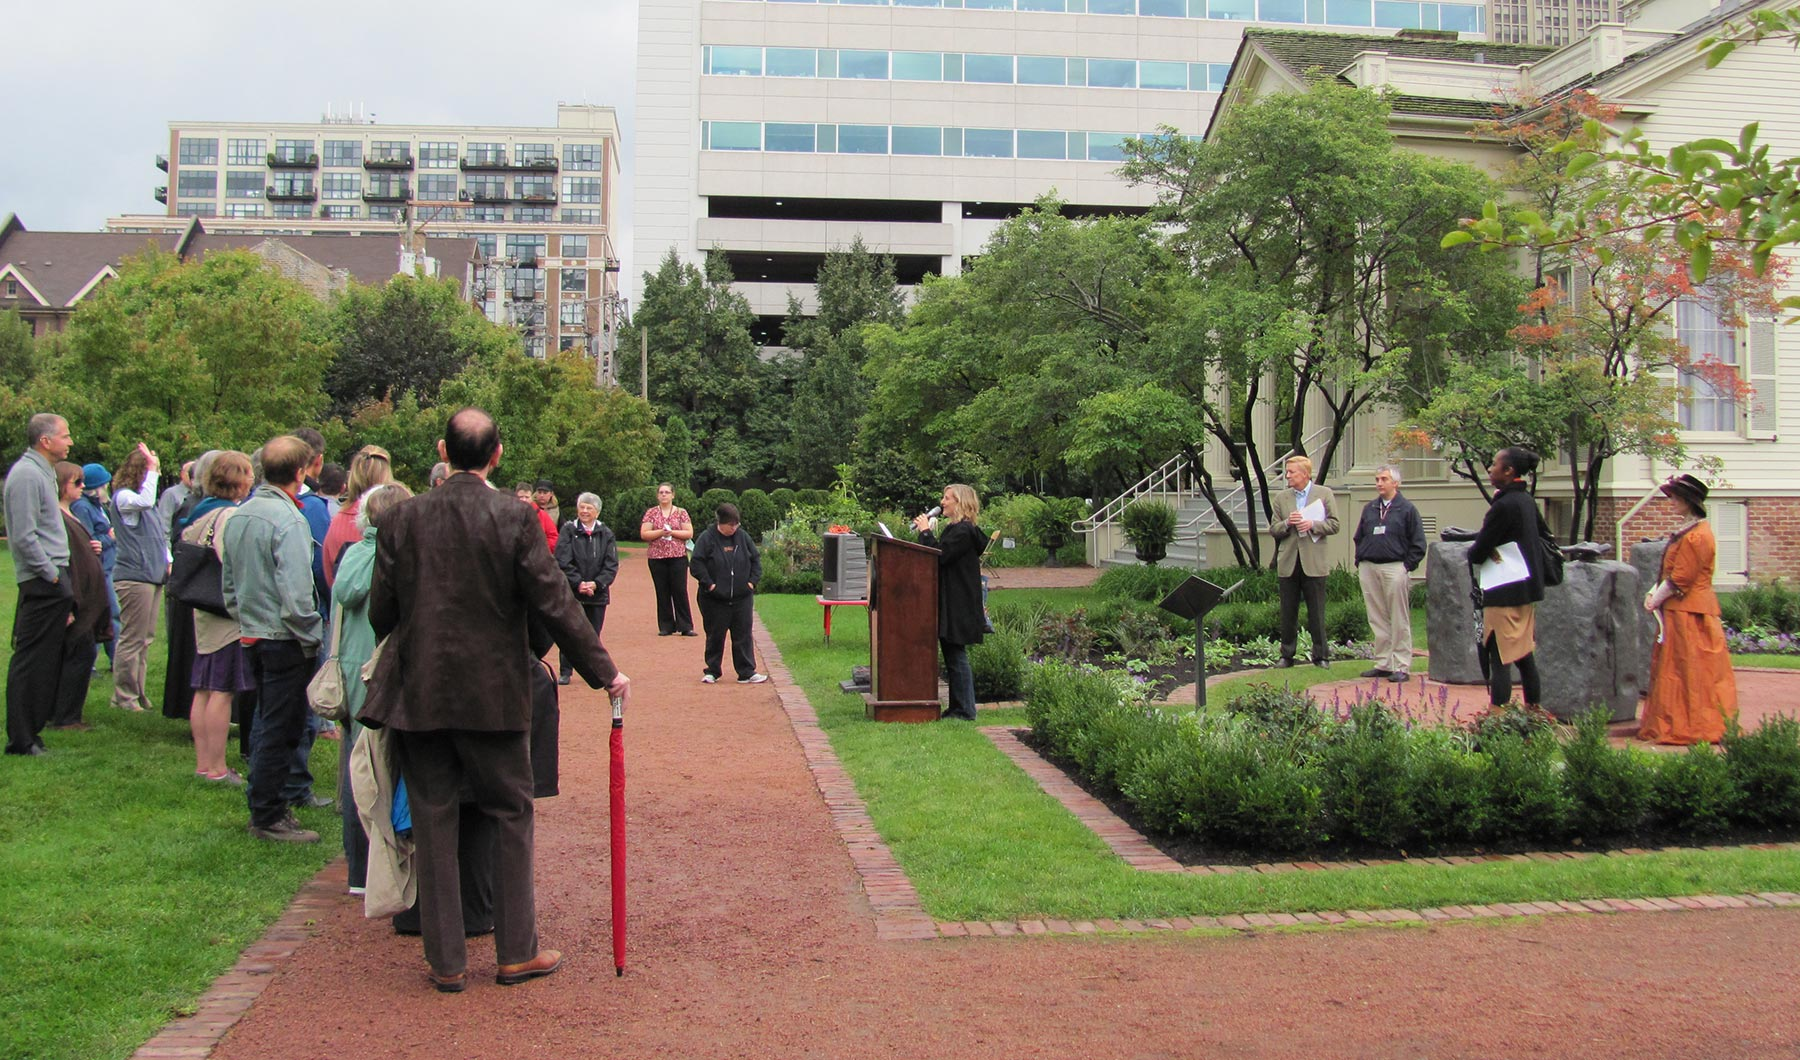 Rededication of Jane Addams Monument near Widow Clarke House in Chicago Women's Park and Gardens, 2011.